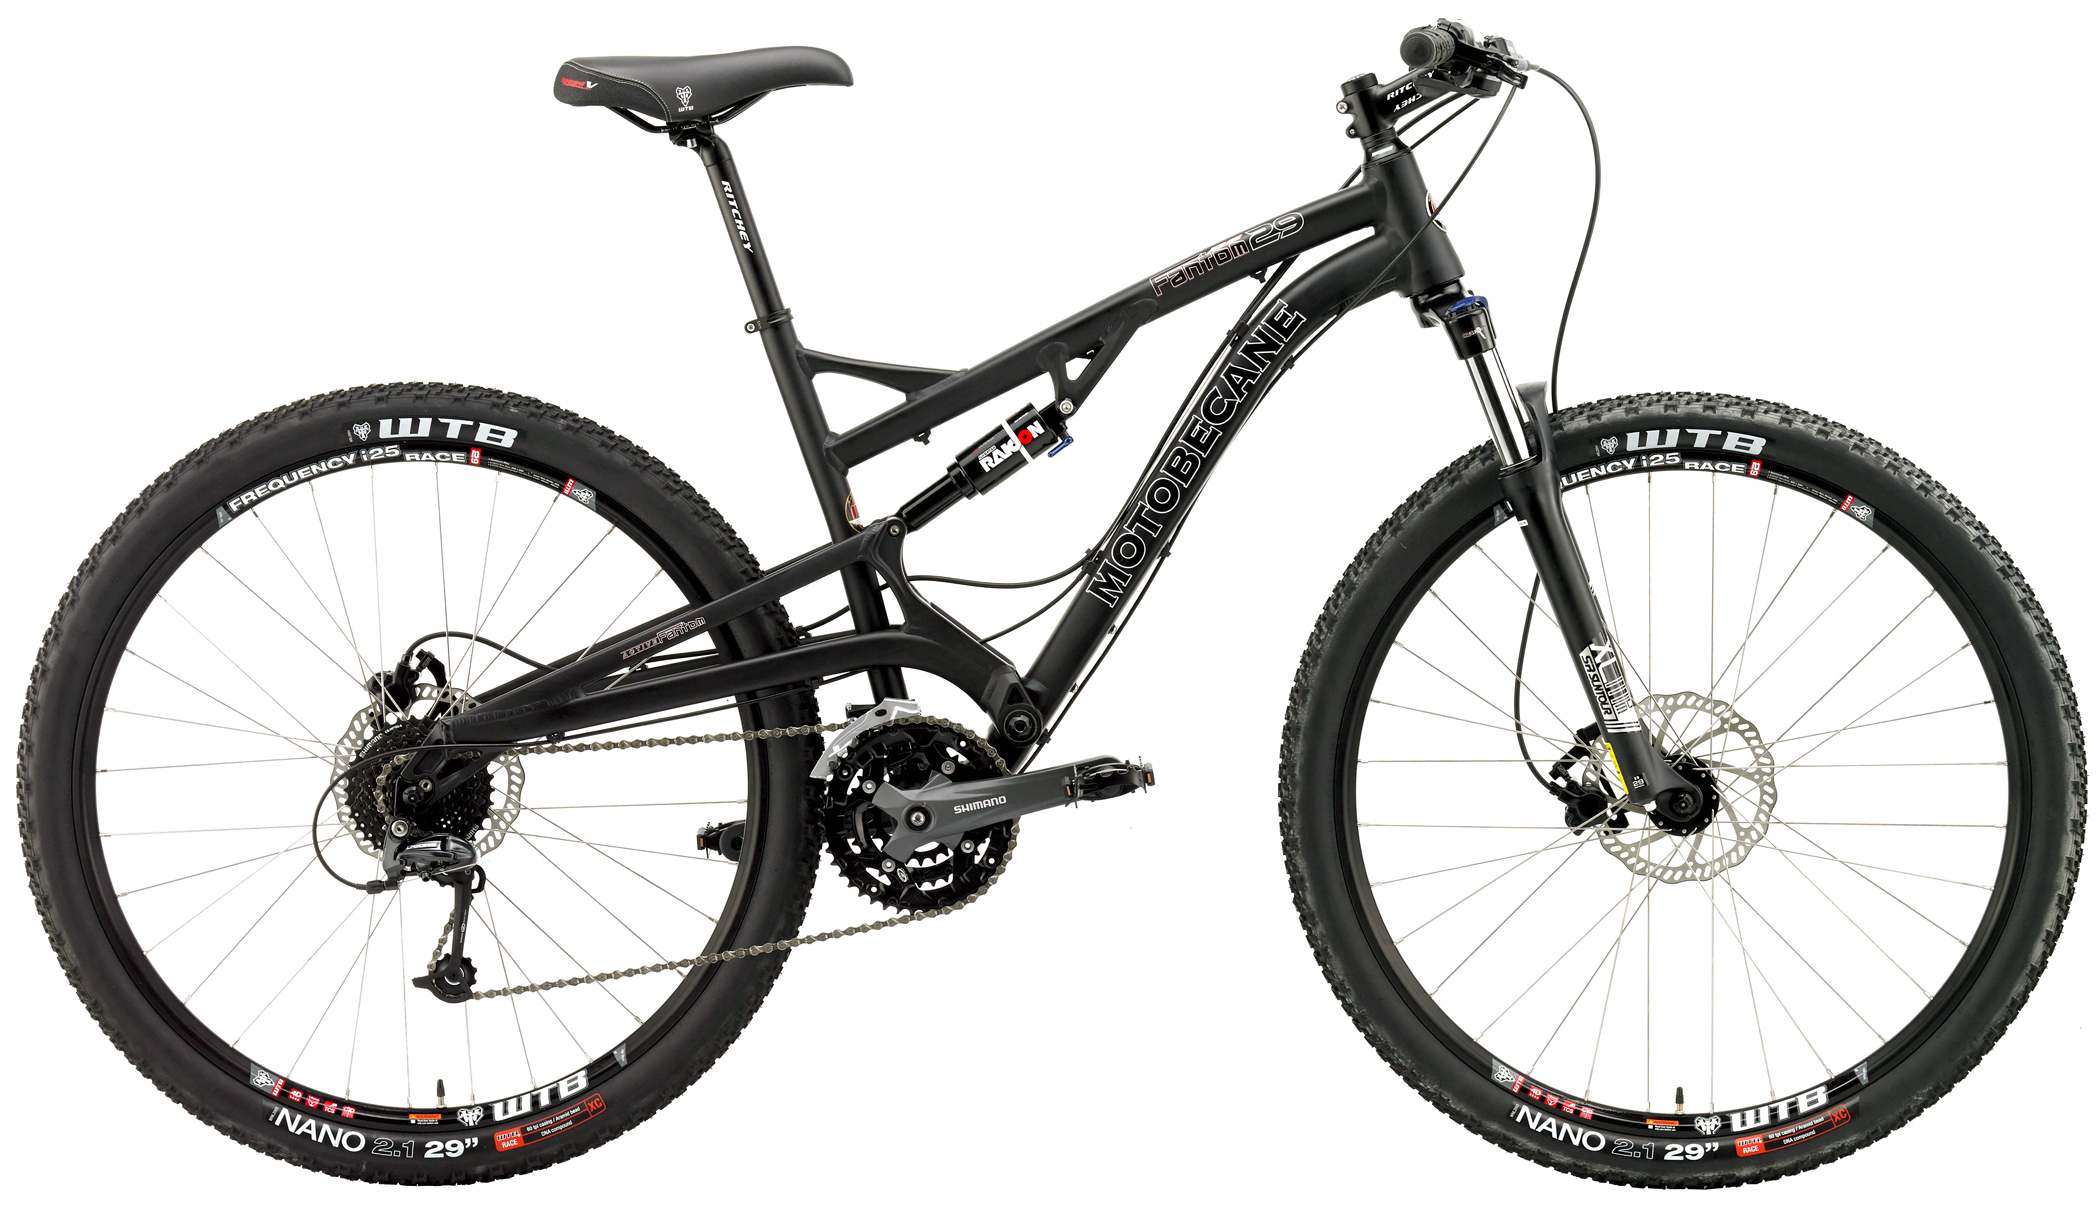 FANTOM DS TRAIL  - FULL SUSPENSION w/ HYDRAULIC DISC BRAKES